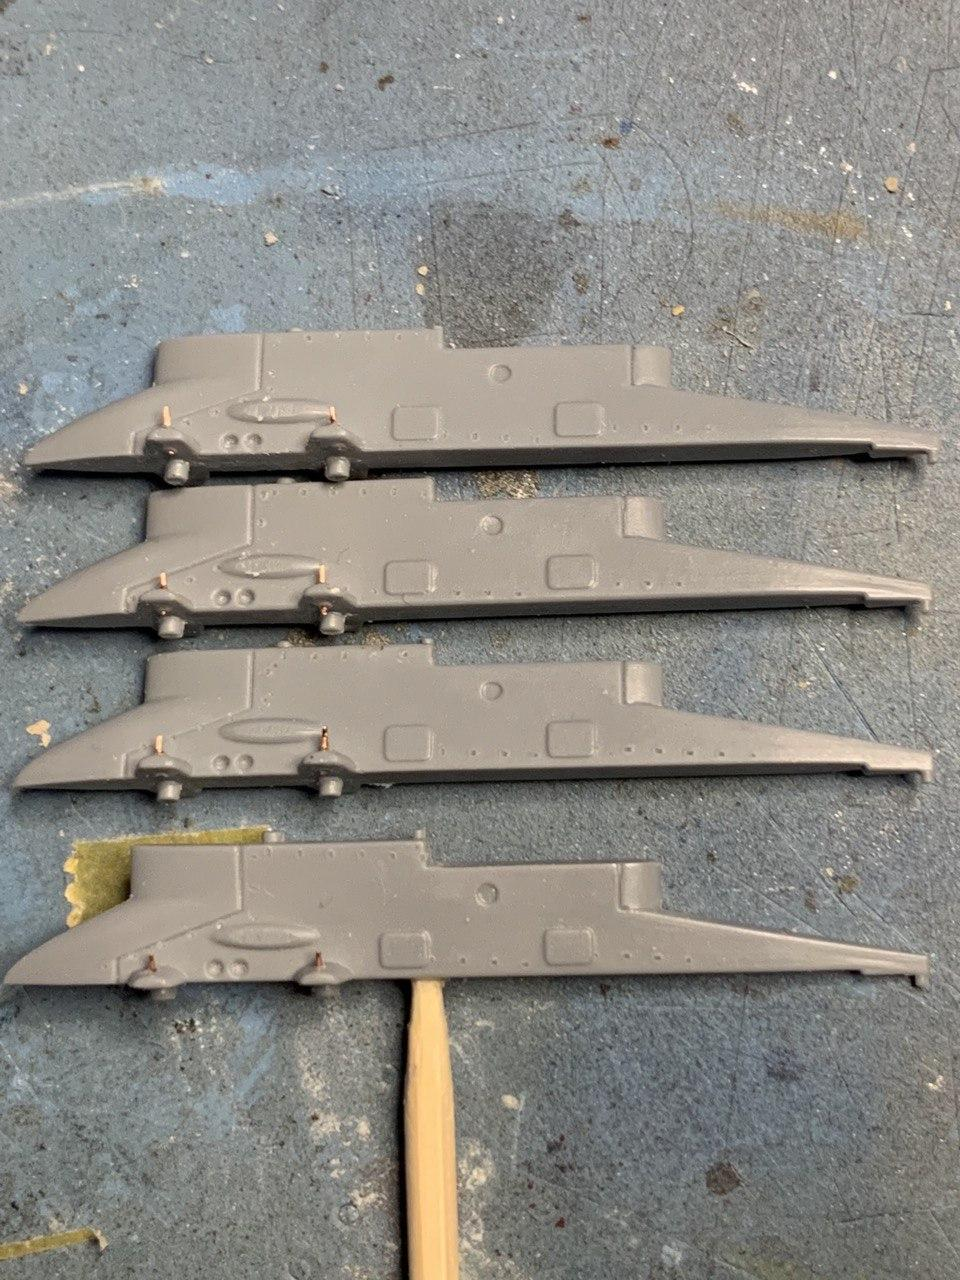 Mirage F1EQ4 ravitailleur - Irak - Special Hobby + Yahu 1/72 Photo226